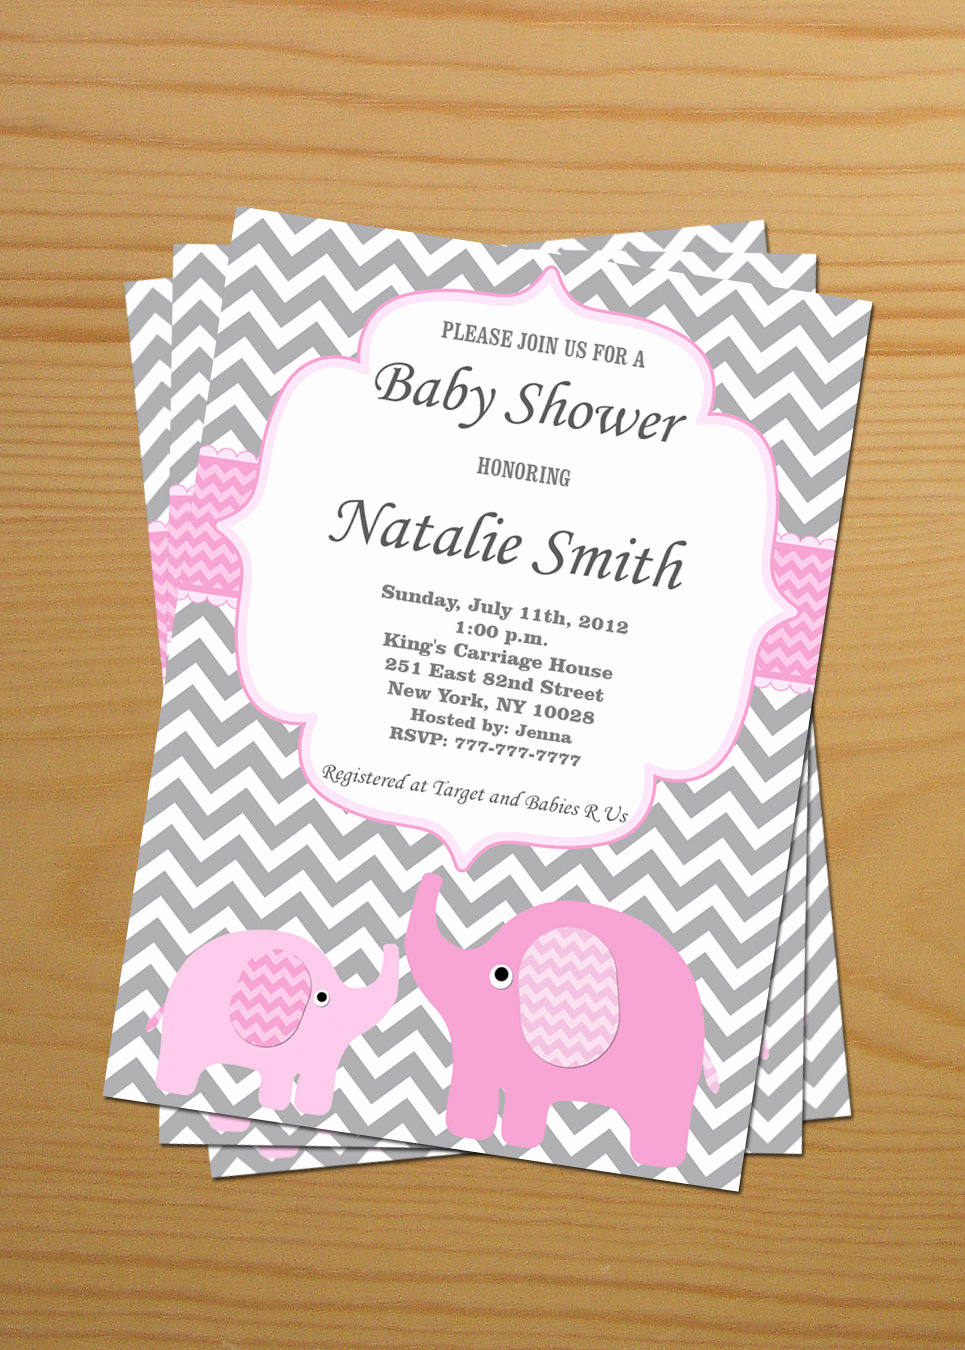 Elephant Invitation Baby Shower Fresh Baby Shower Invitation Elephant Baby Shower Invitation Girl